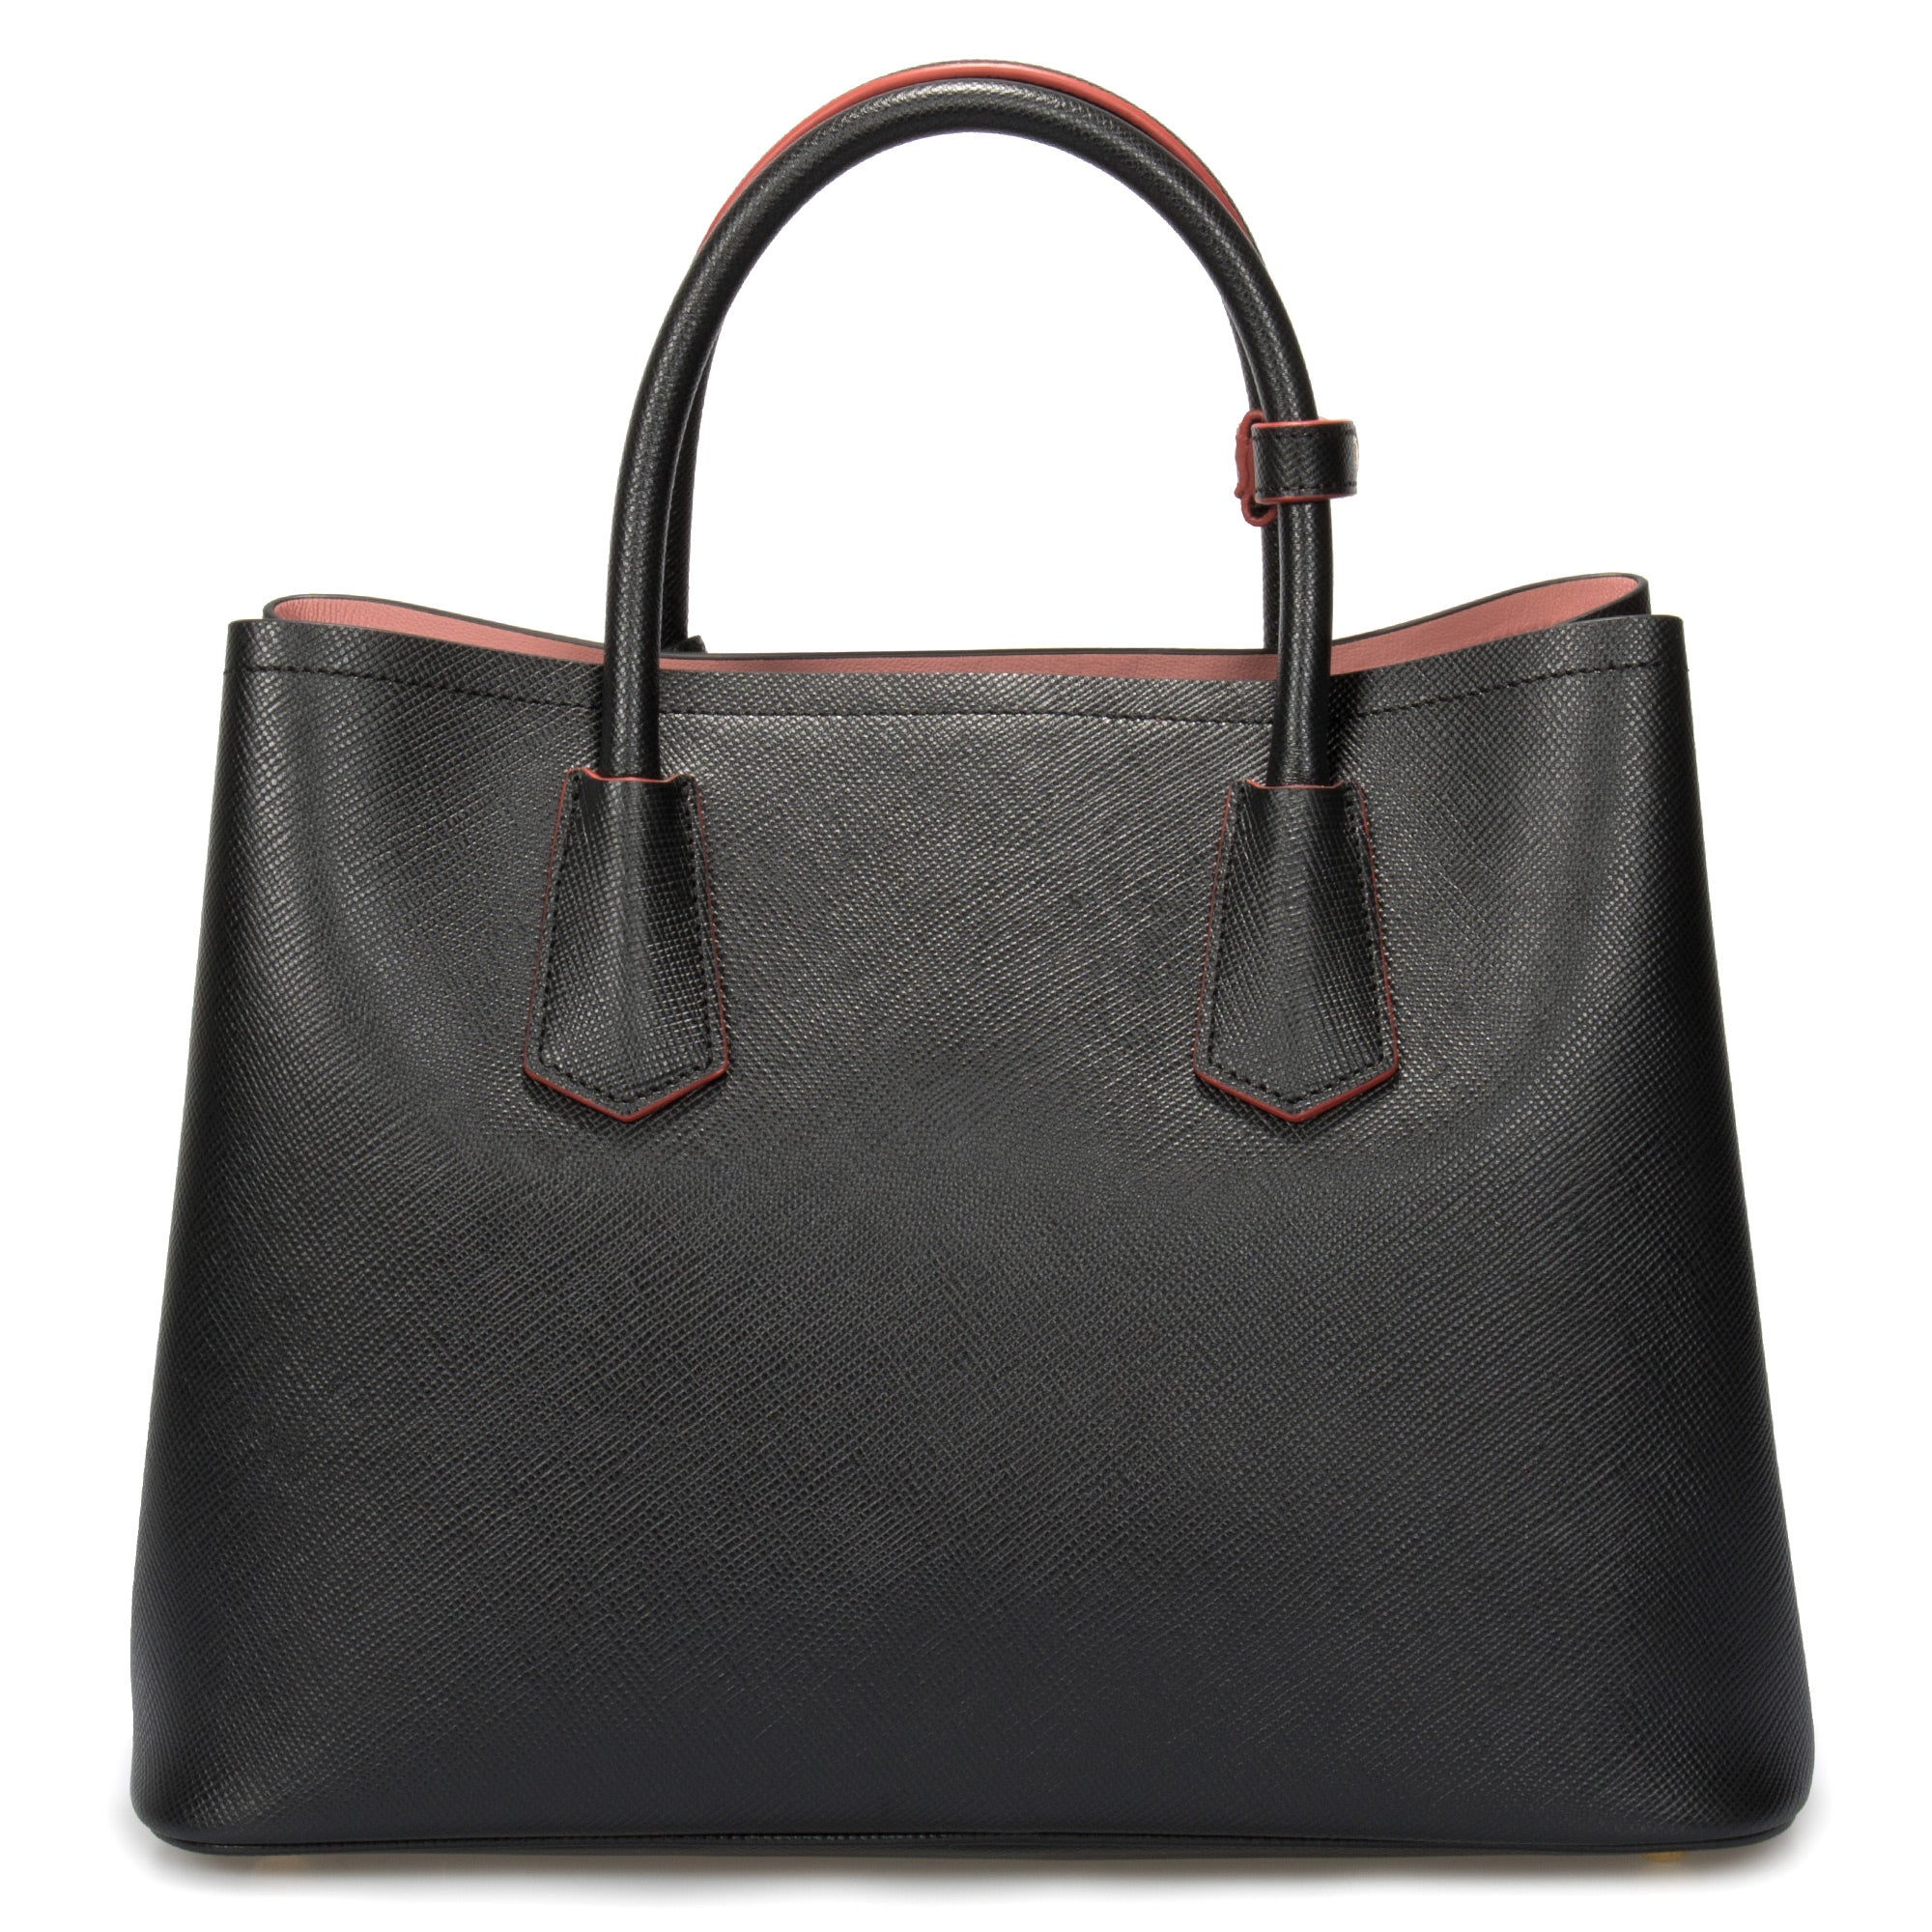 Prada Double Saffiano Black Leather Tote In Black